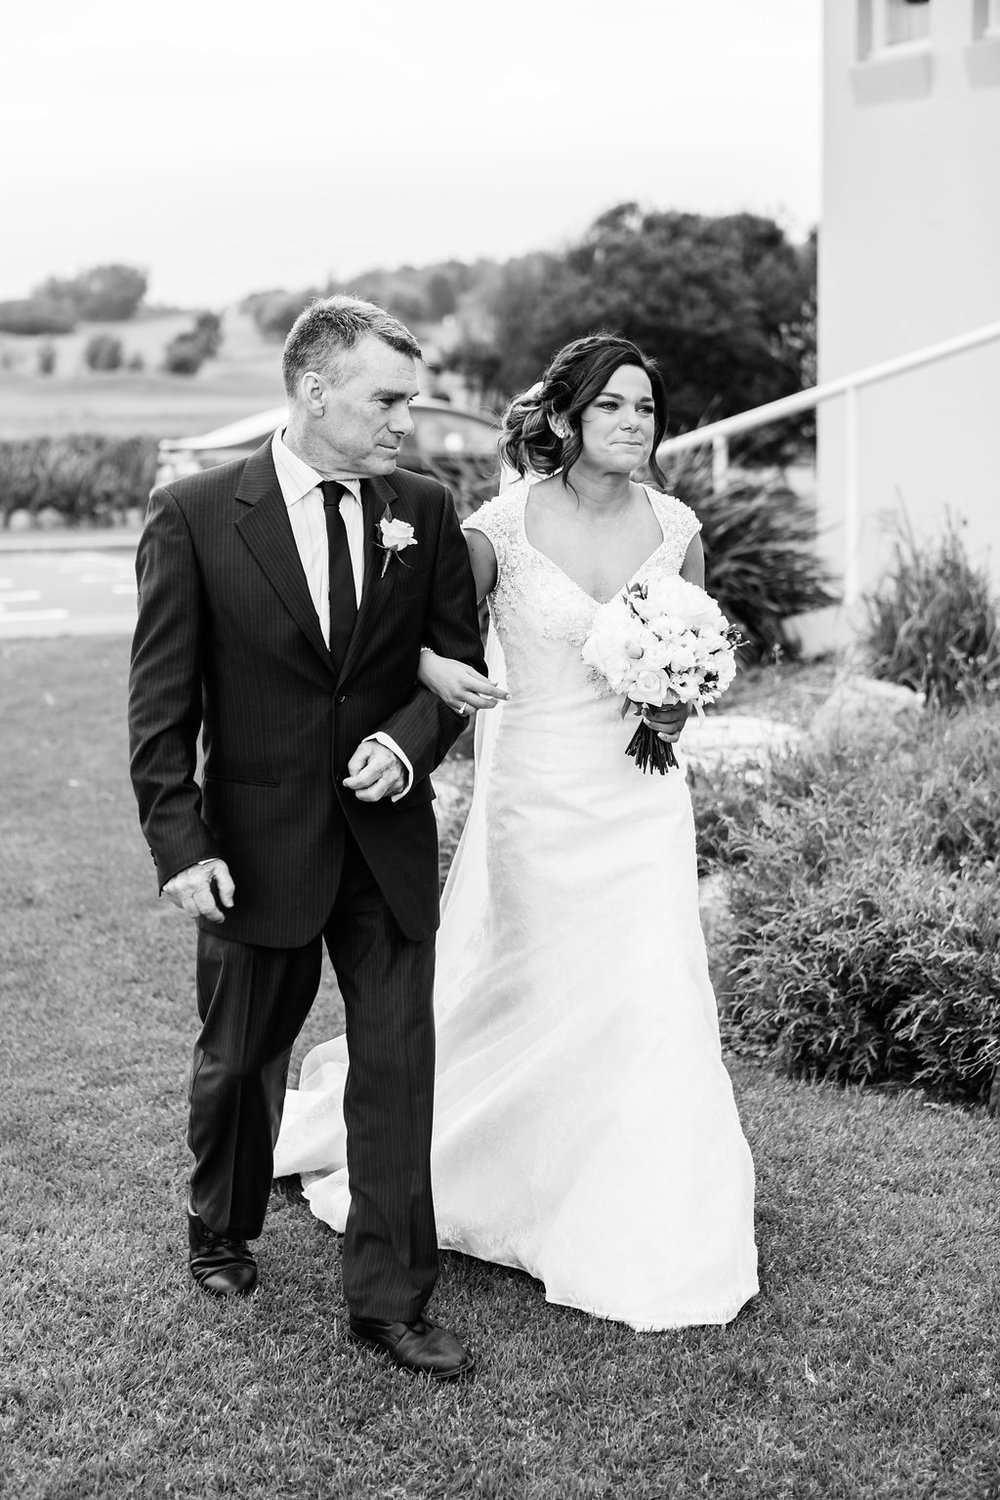 3.Lauren&Chris|Ceremony(48of251).jpg